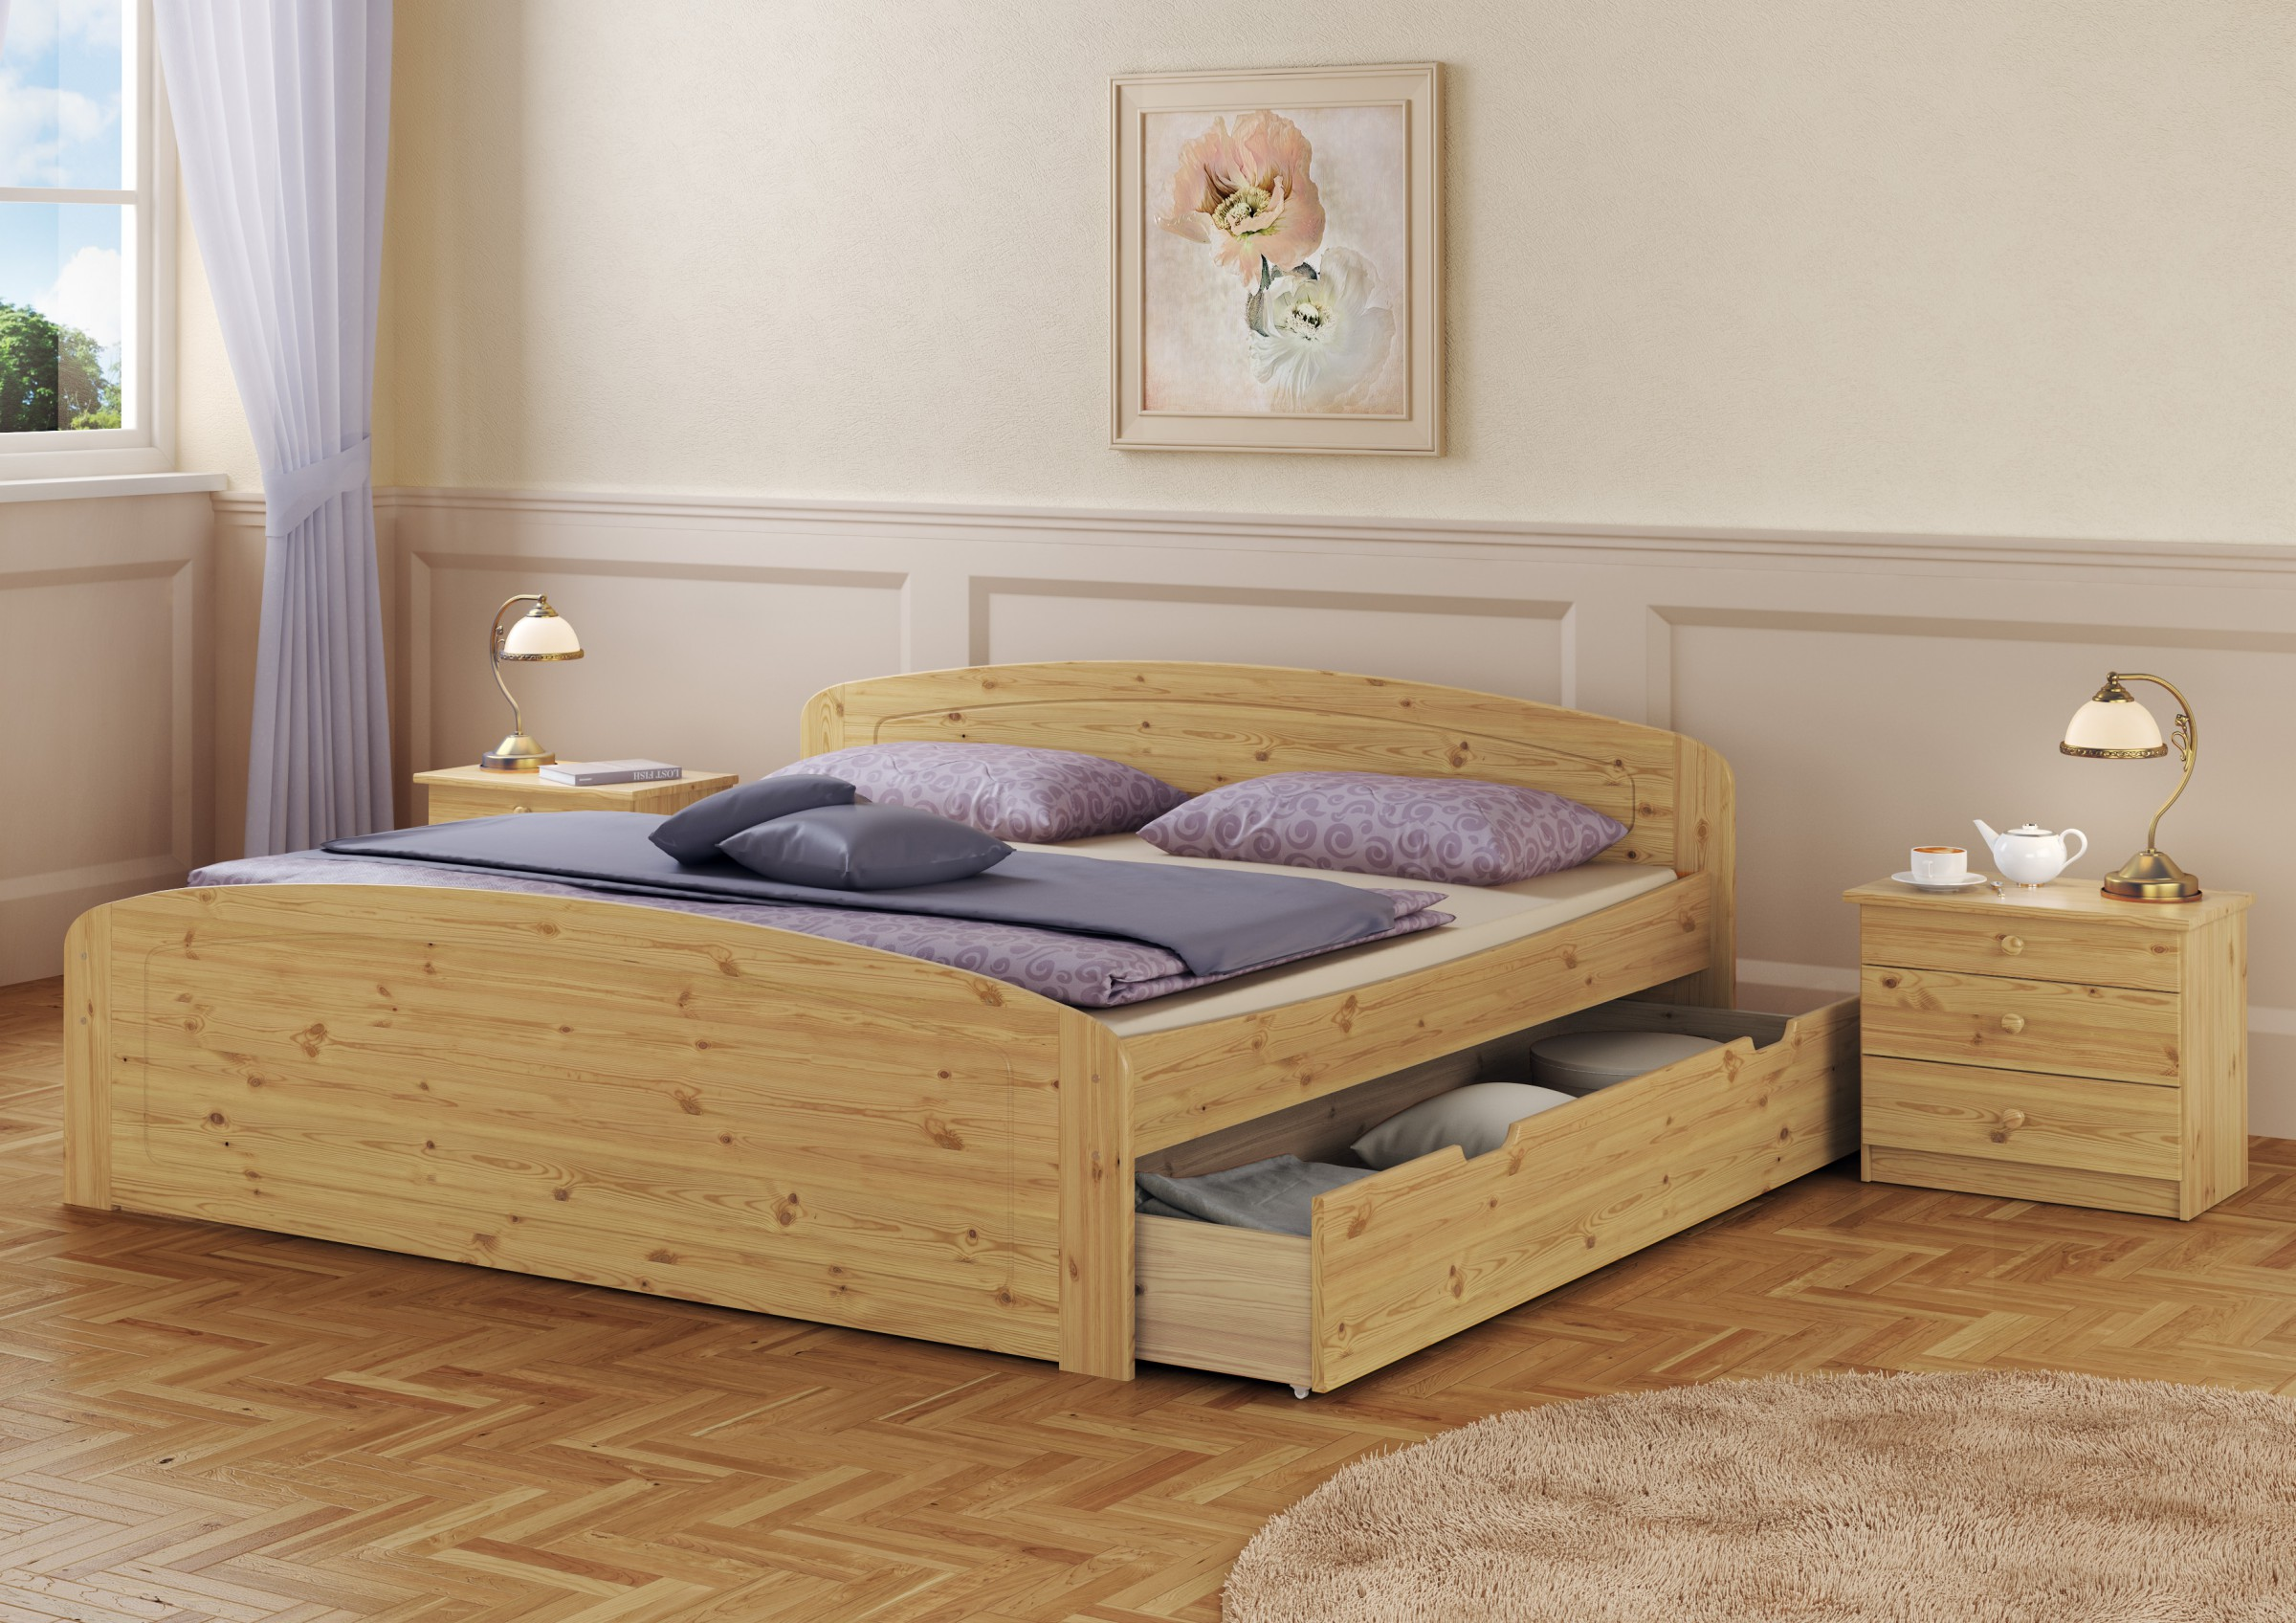 doppelbett bettkasten rollrost 200x200 seniorenbett massivholz kiefer ebay. Black Bedroom Furniture Sets. Home Design Ideas